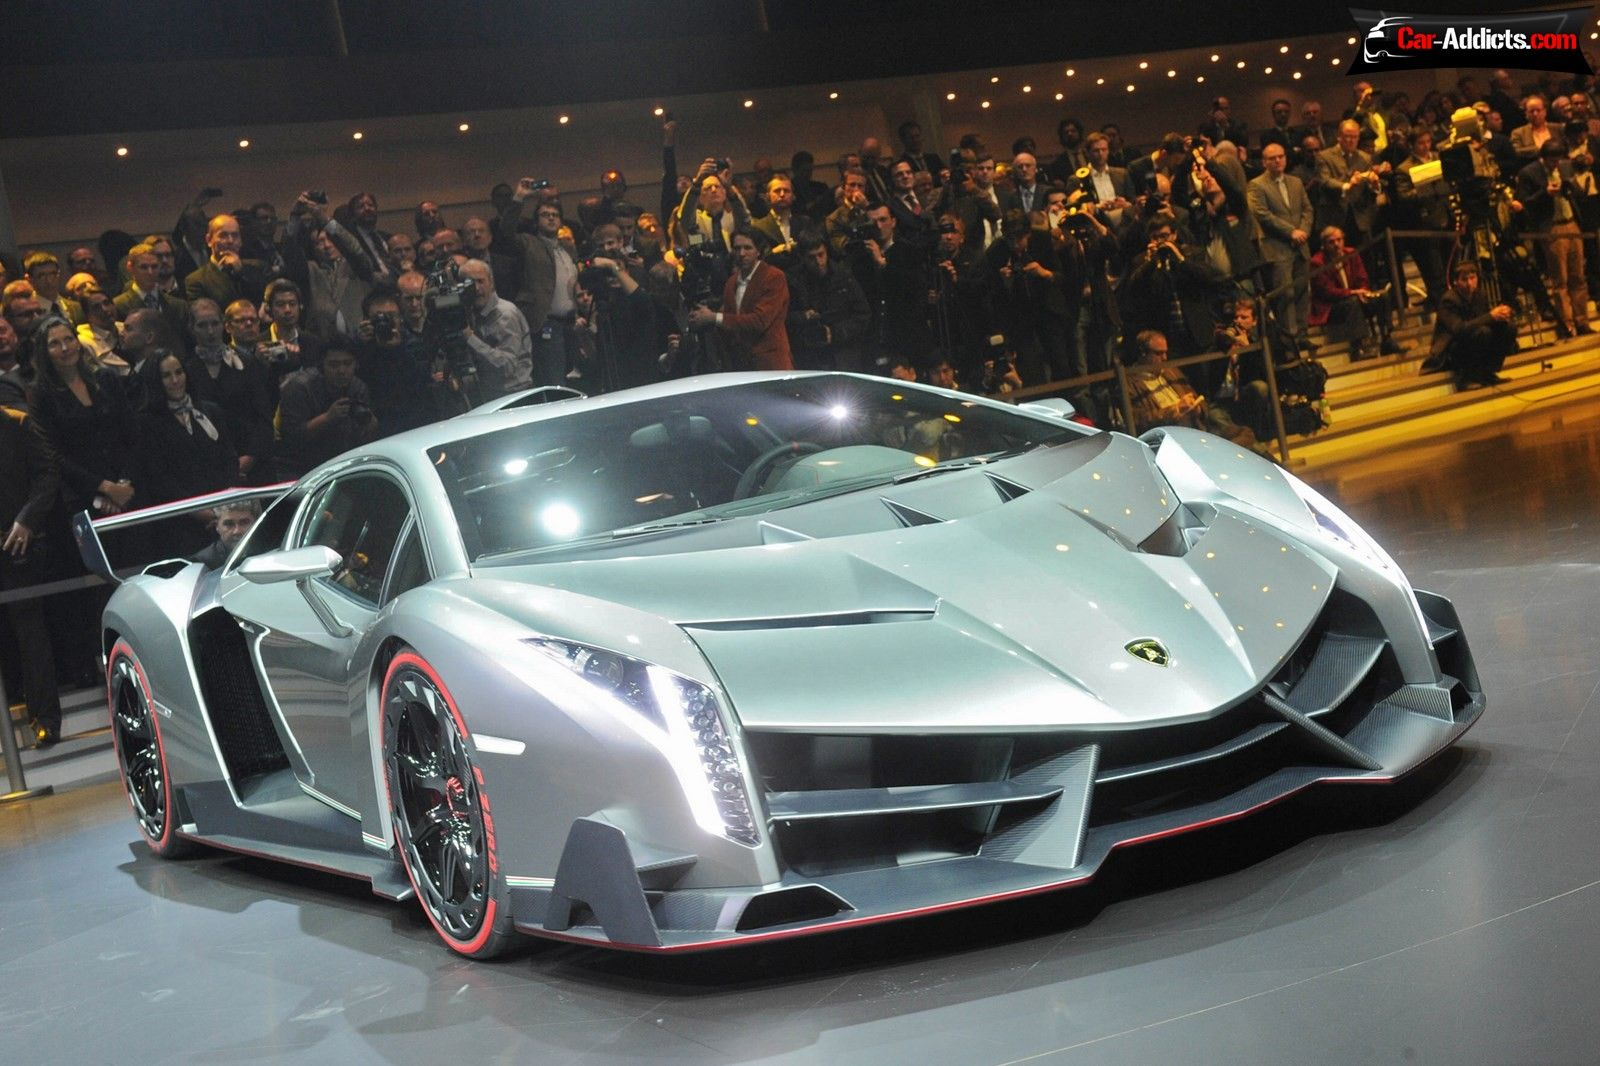 Worksheet. nice Top 10 Luxurious Cars of the World 2013  Sport cars